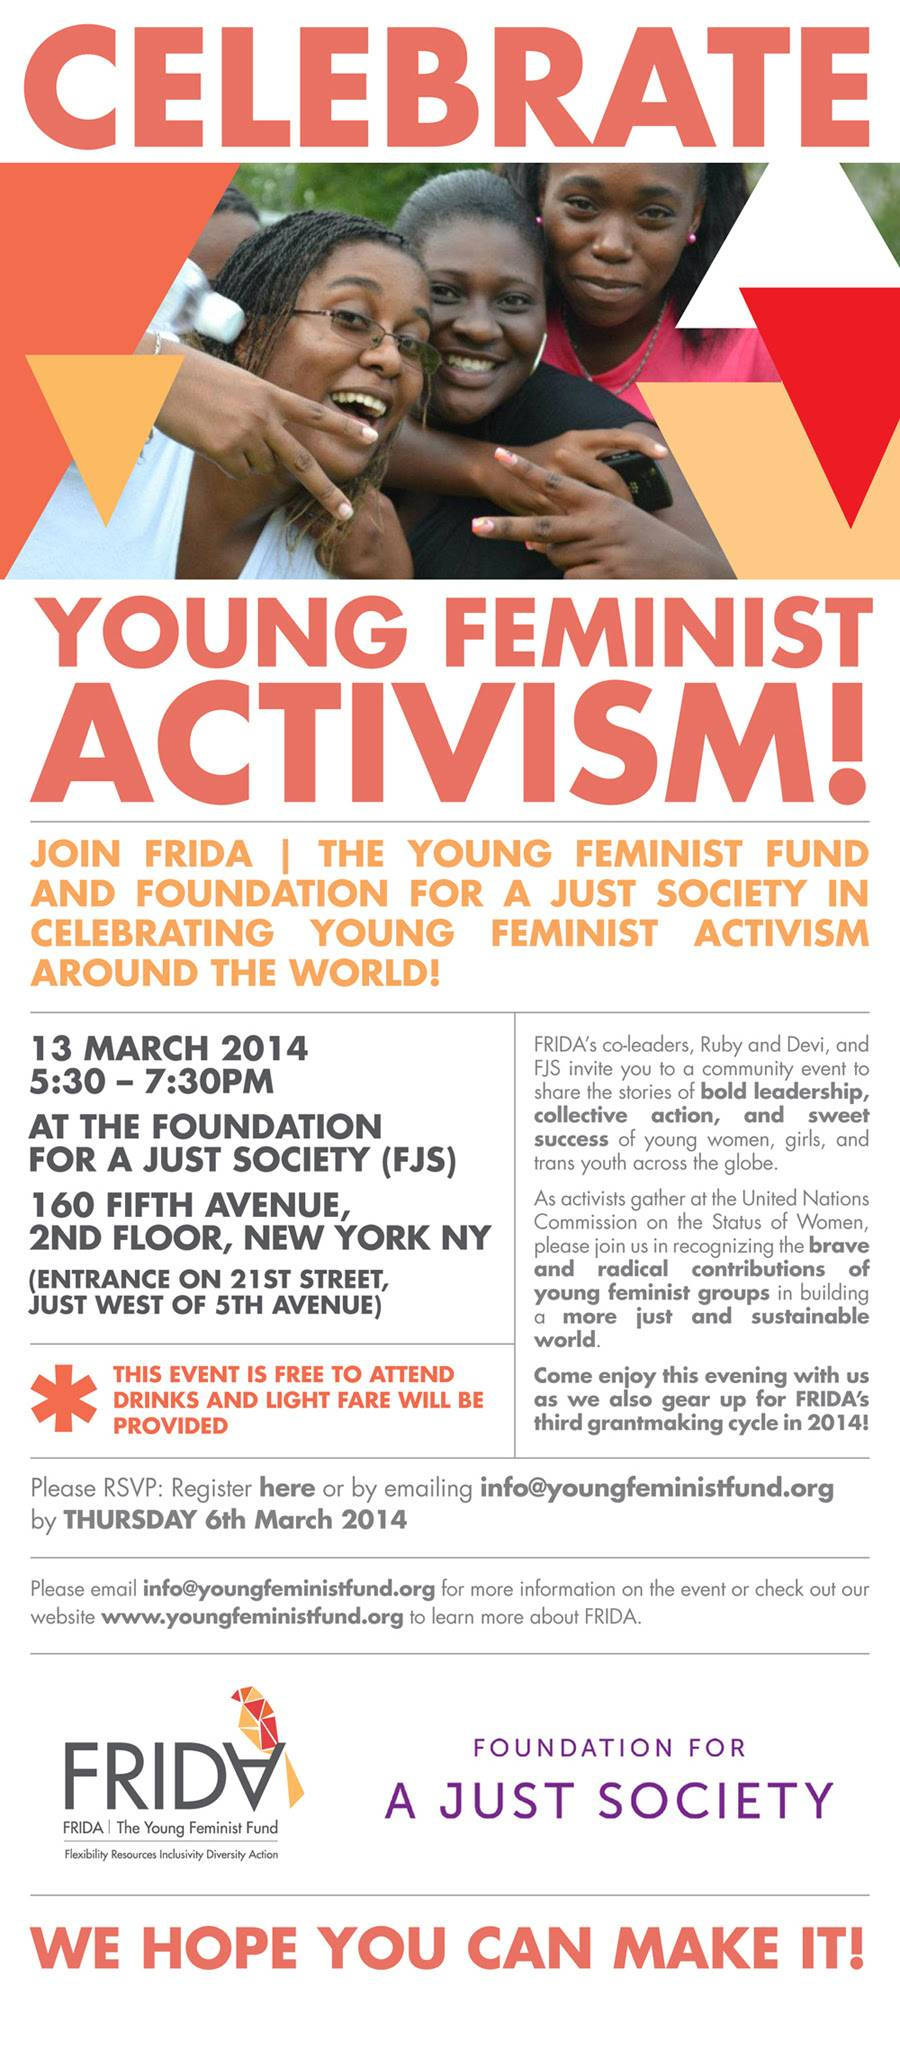 Young Feminist Activism event